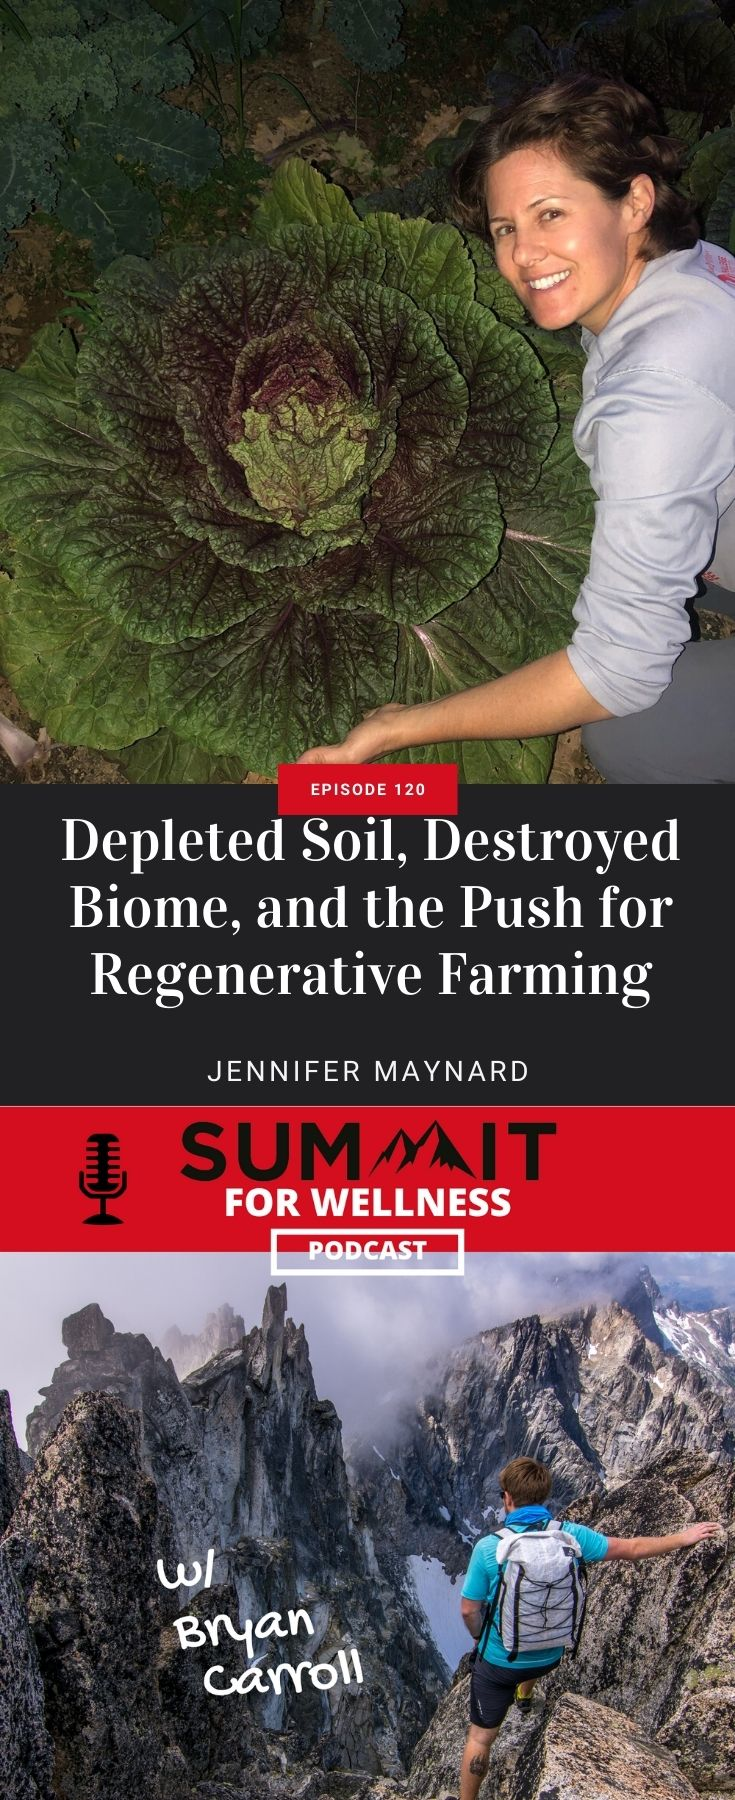 Jennifer Maynard shares how farming destroys the soil